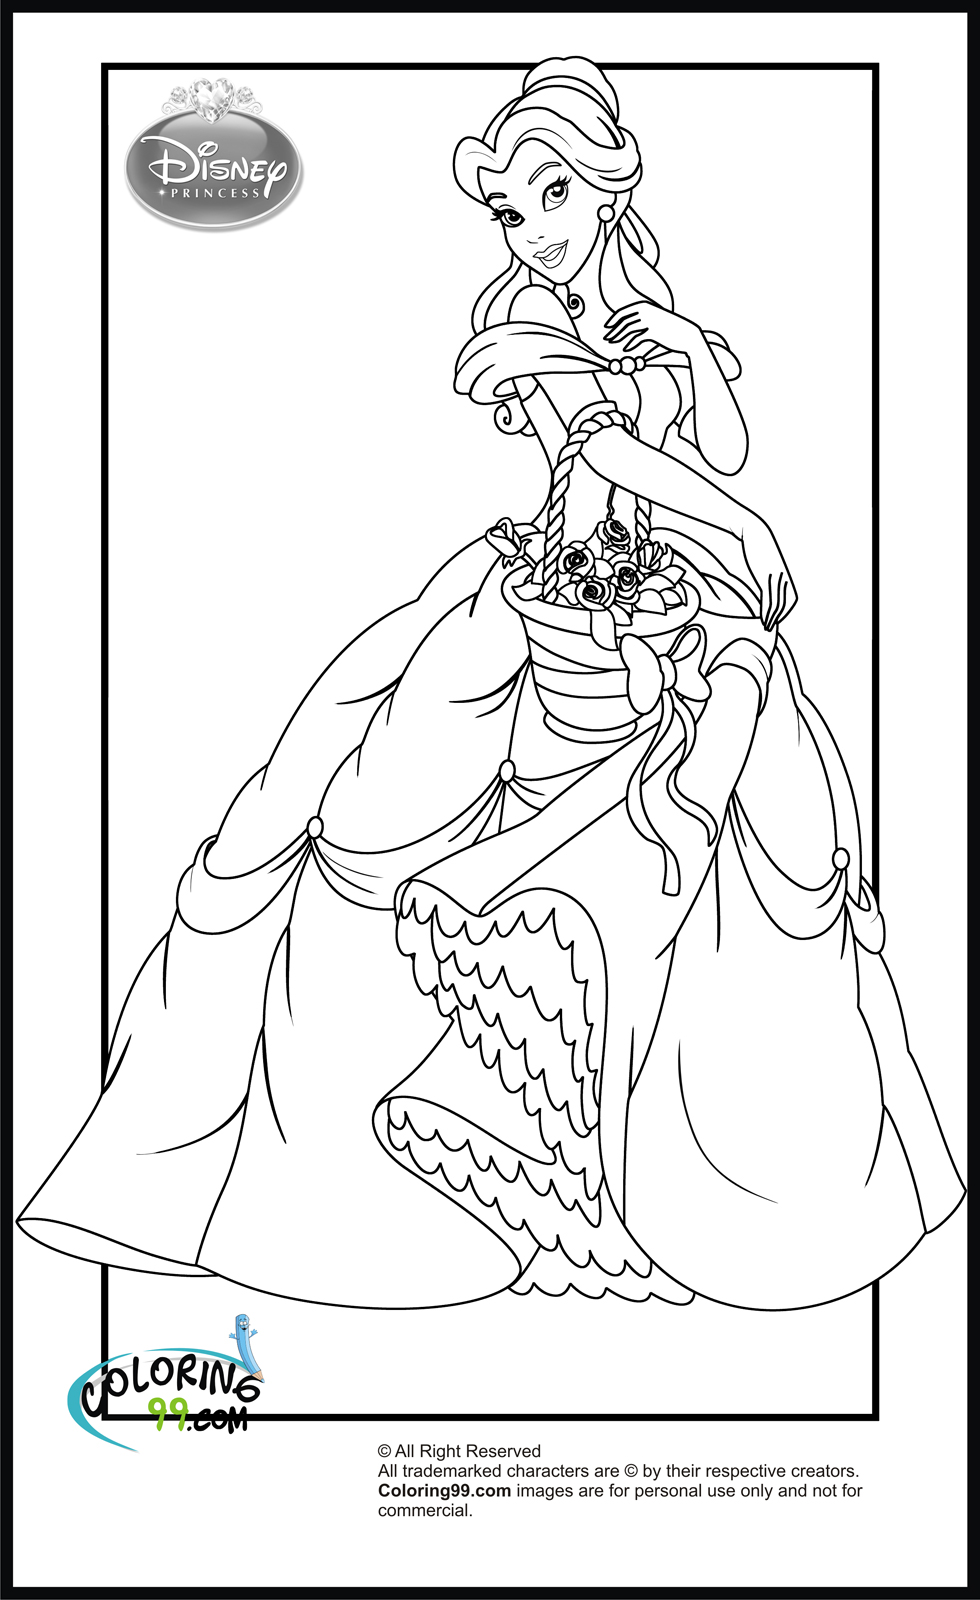 princess images for coloring snow white is very happy on disney princesses coloring coloring princess images for